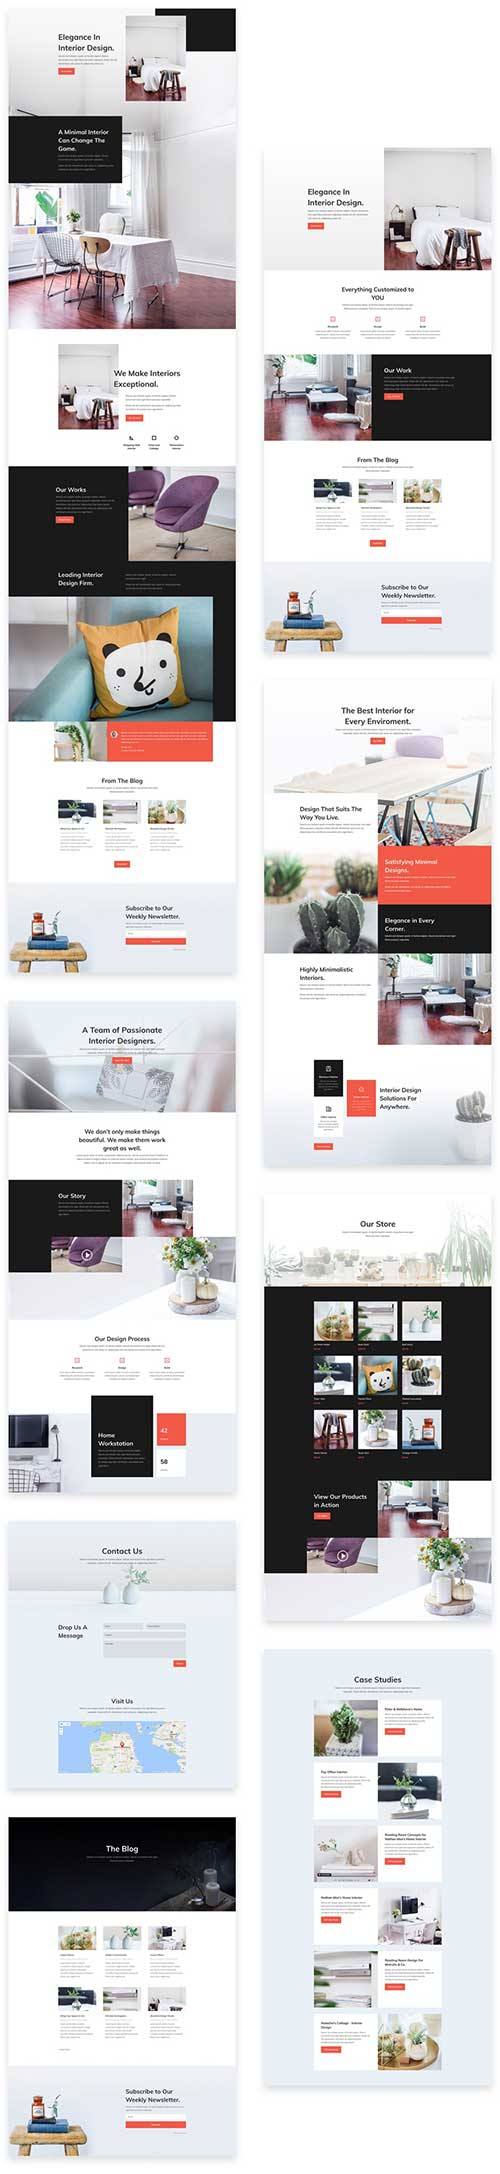 Free divi theme layout pack for interior design agency for Design agency